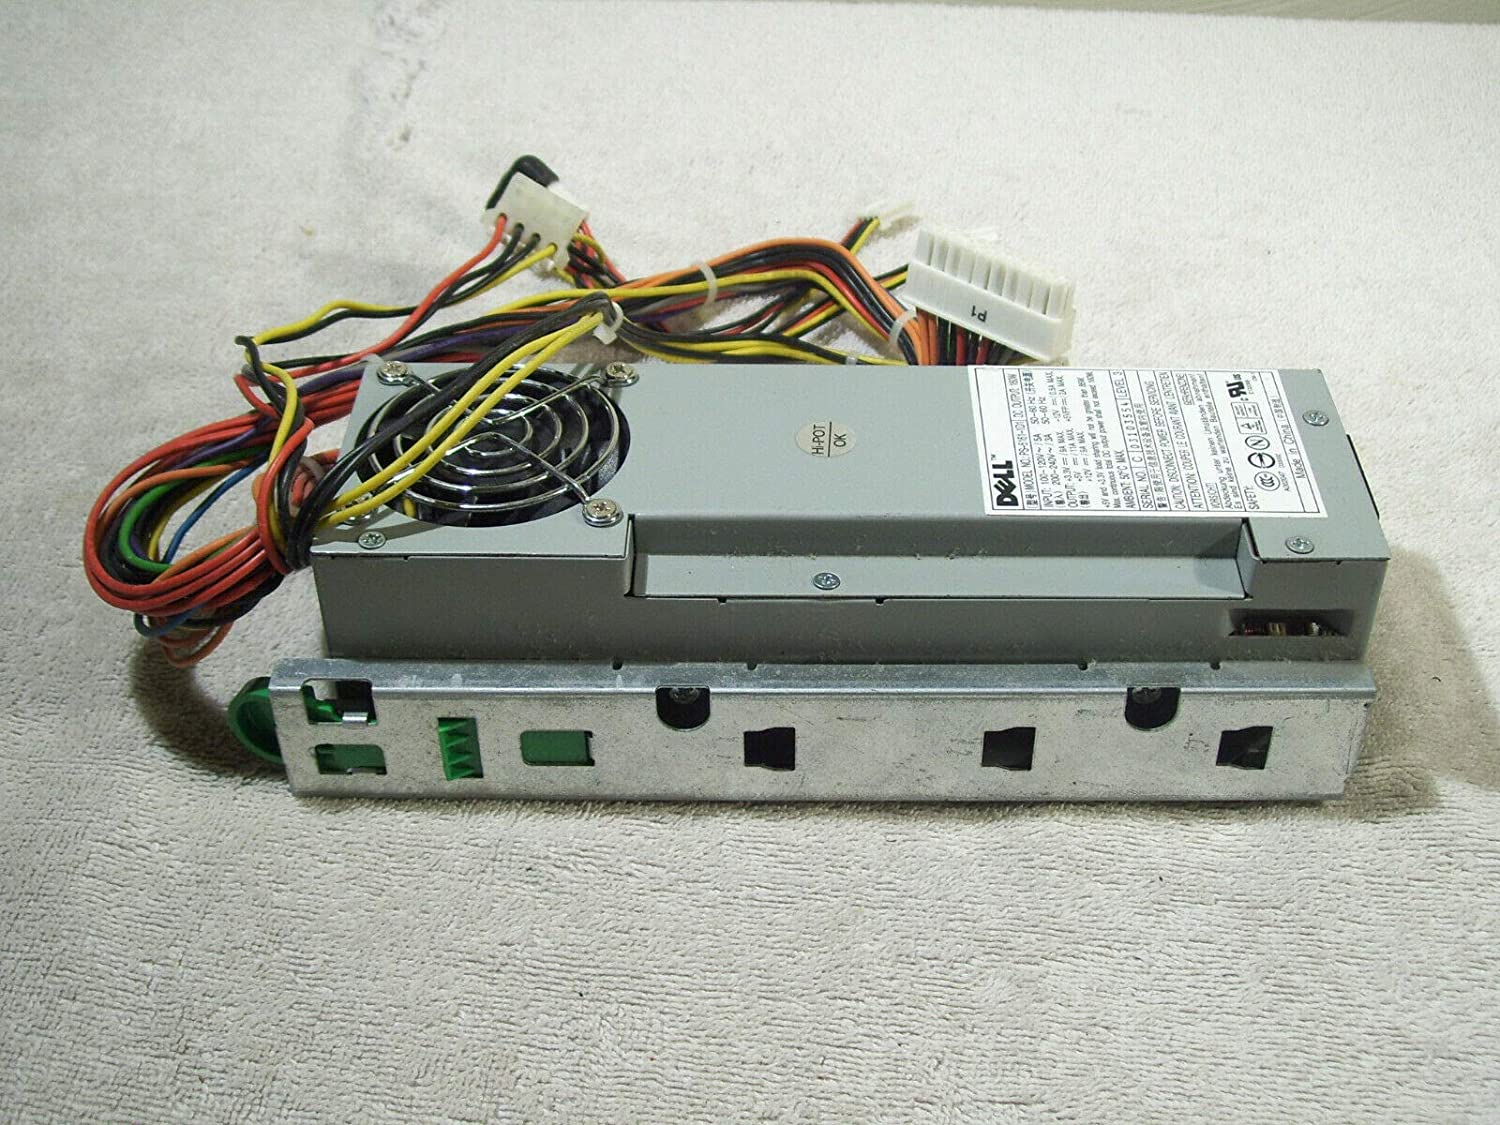 Genuine OEM DELL Optiplex GX150/240/260/270/50/60 Ultra/SFF PS-5161-1D1 Internal 160 Watts Max Peak Output IDE HDD Connector P2171 3Y147 P0813 Performance Wire Harness Power Supply Unit 3N200